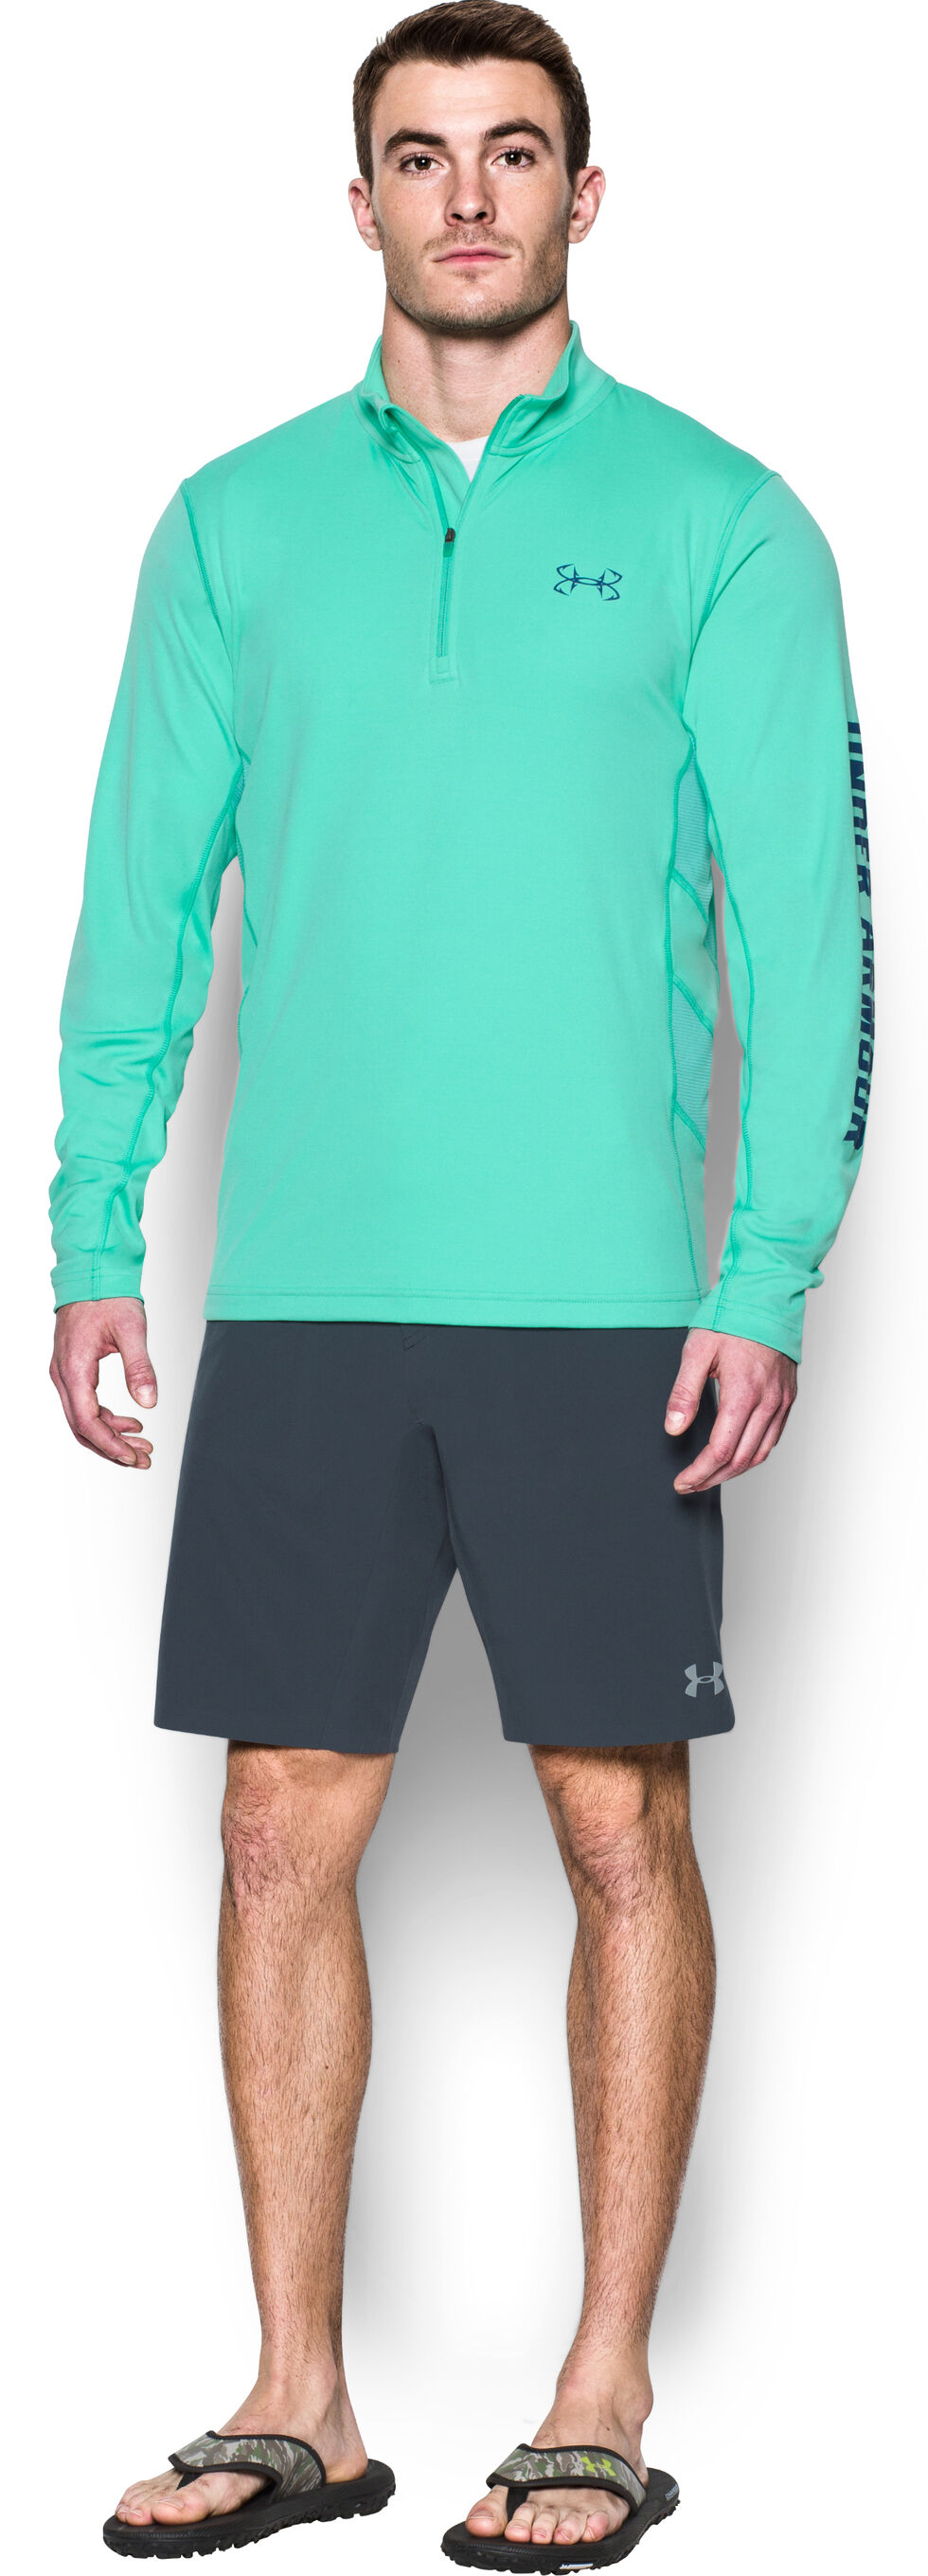 Under Armour Men's Fish Hunter 1/4 Zip Shirt, Lt Green, hi-res